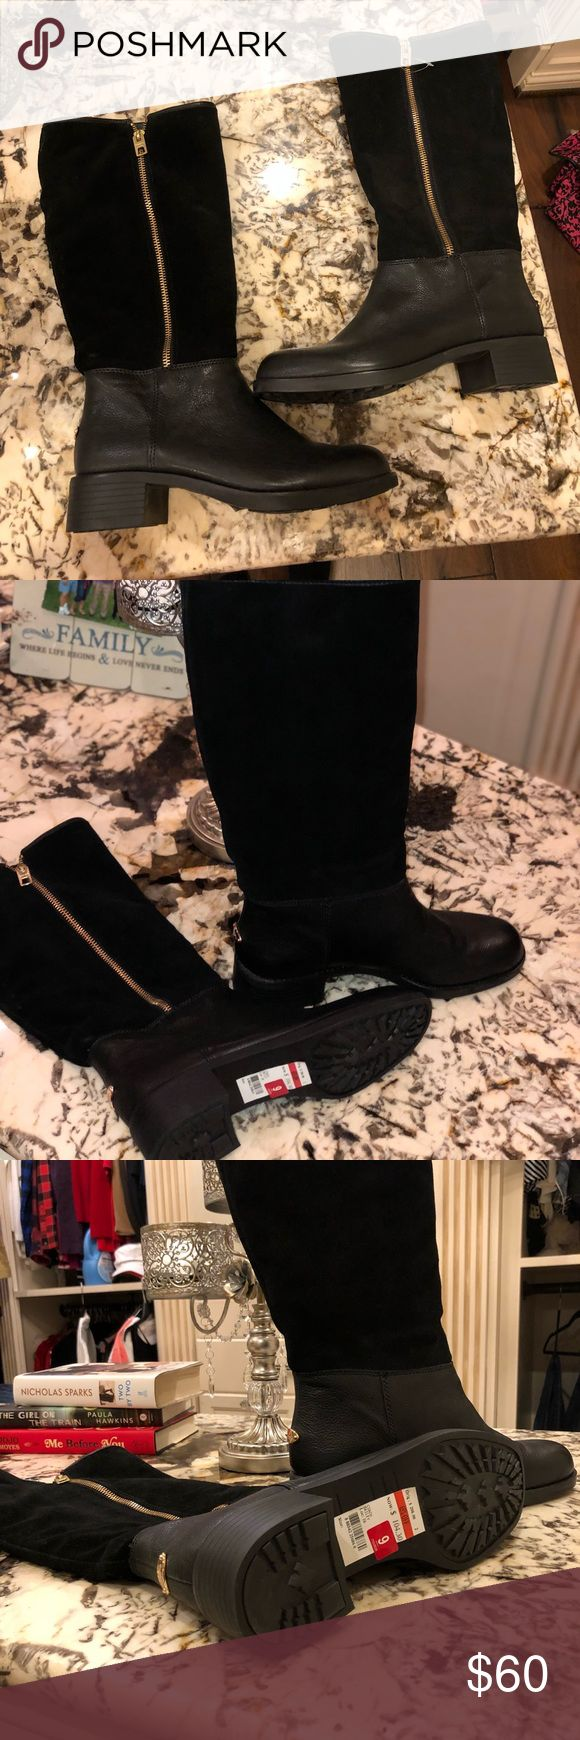 Coach boots Brand new never worn Coach boots. Very cute and can be dressed up or just a causal wear. The bottom  part of the shoe is a leather and the top is a suede. Coach Shoes Winter & Rain Boots